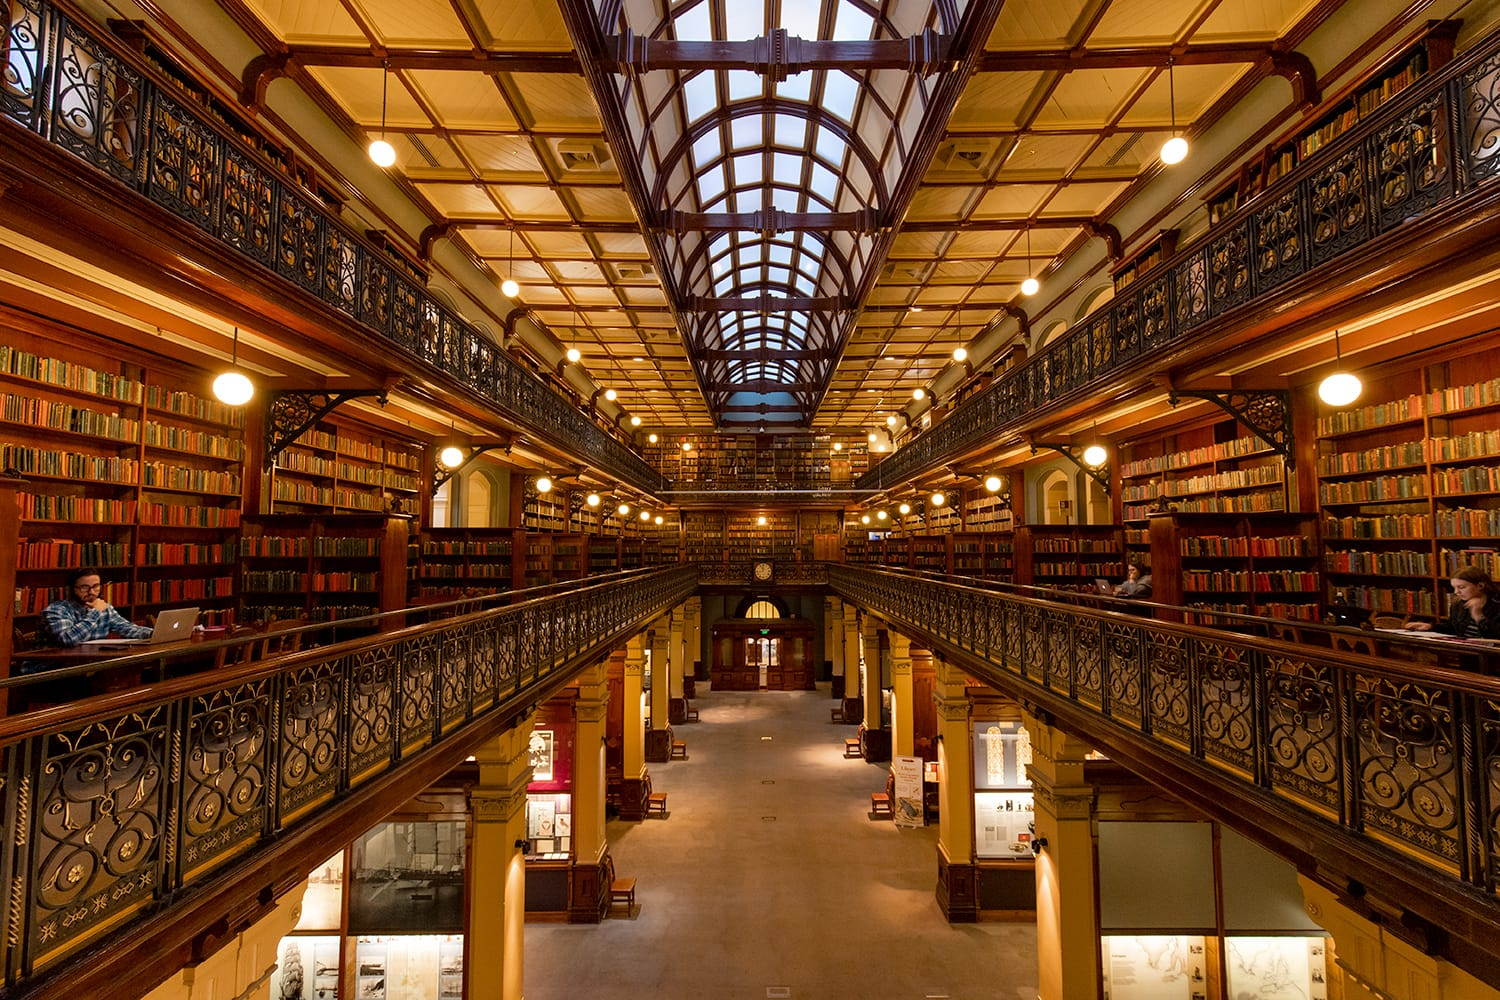 Mortlock Wing view at State Library of South Australia in Adelaide, Australia